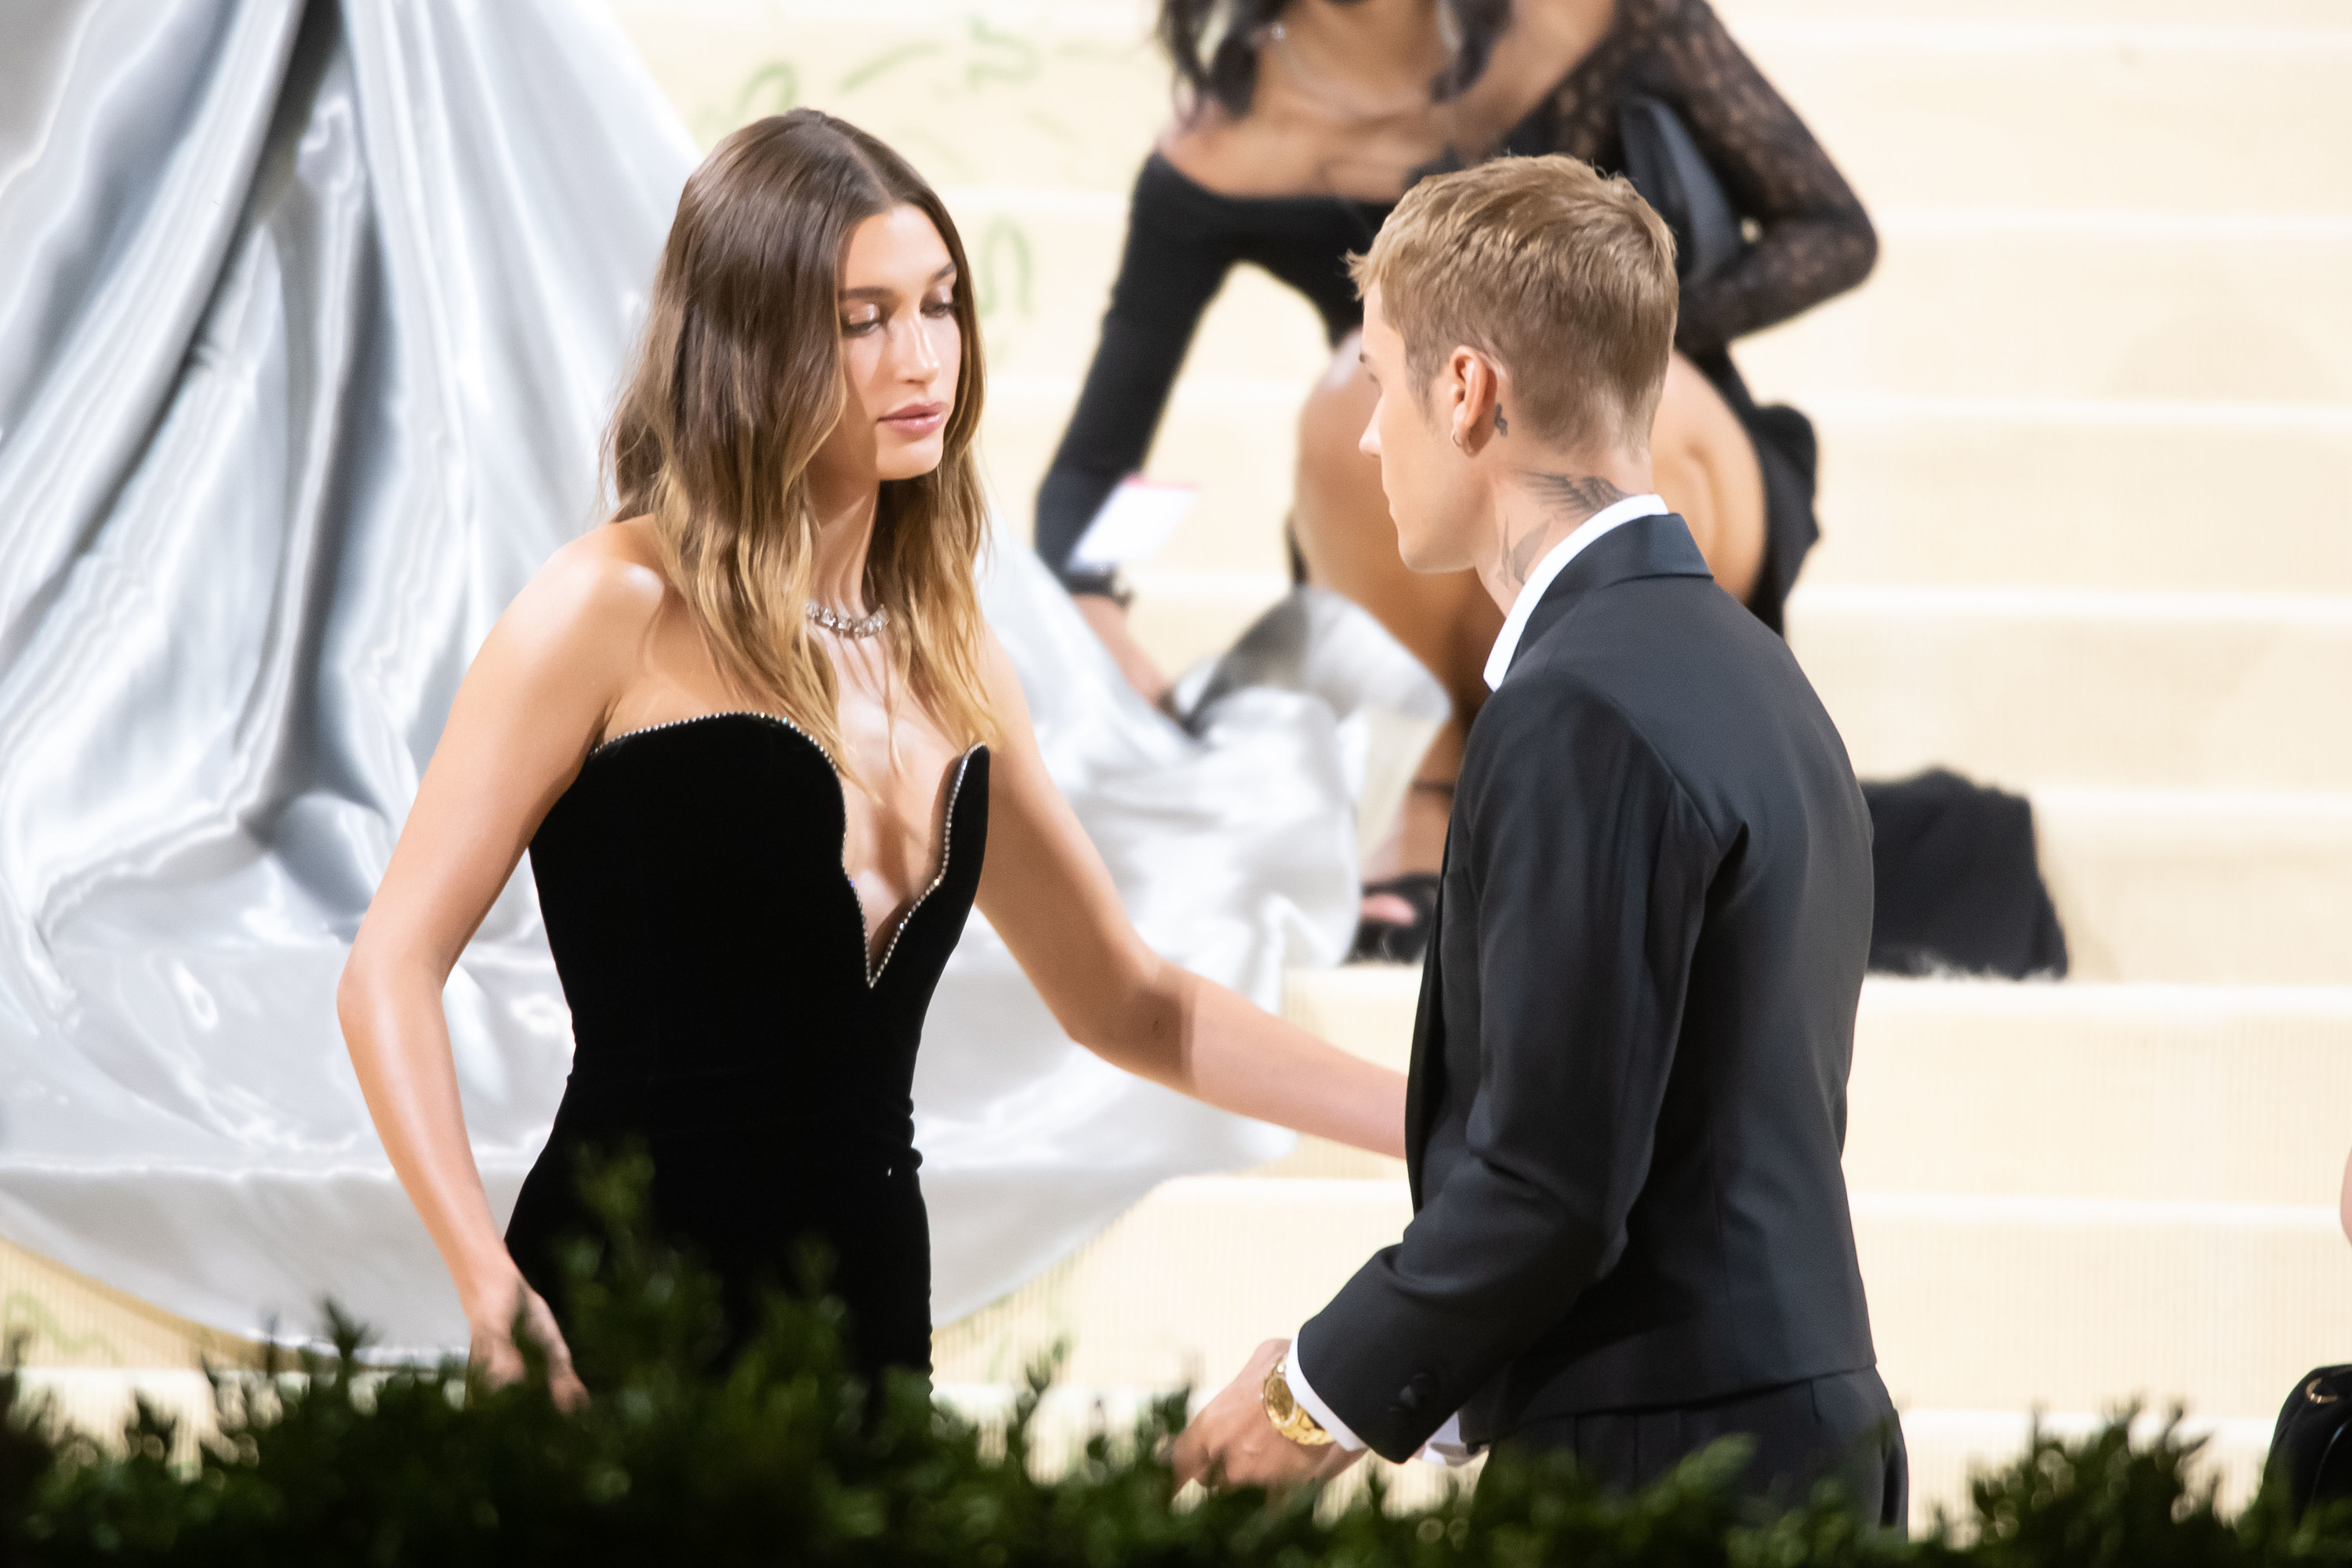 Hailey reaches out for Justin while he looks over at her while walking the carpet